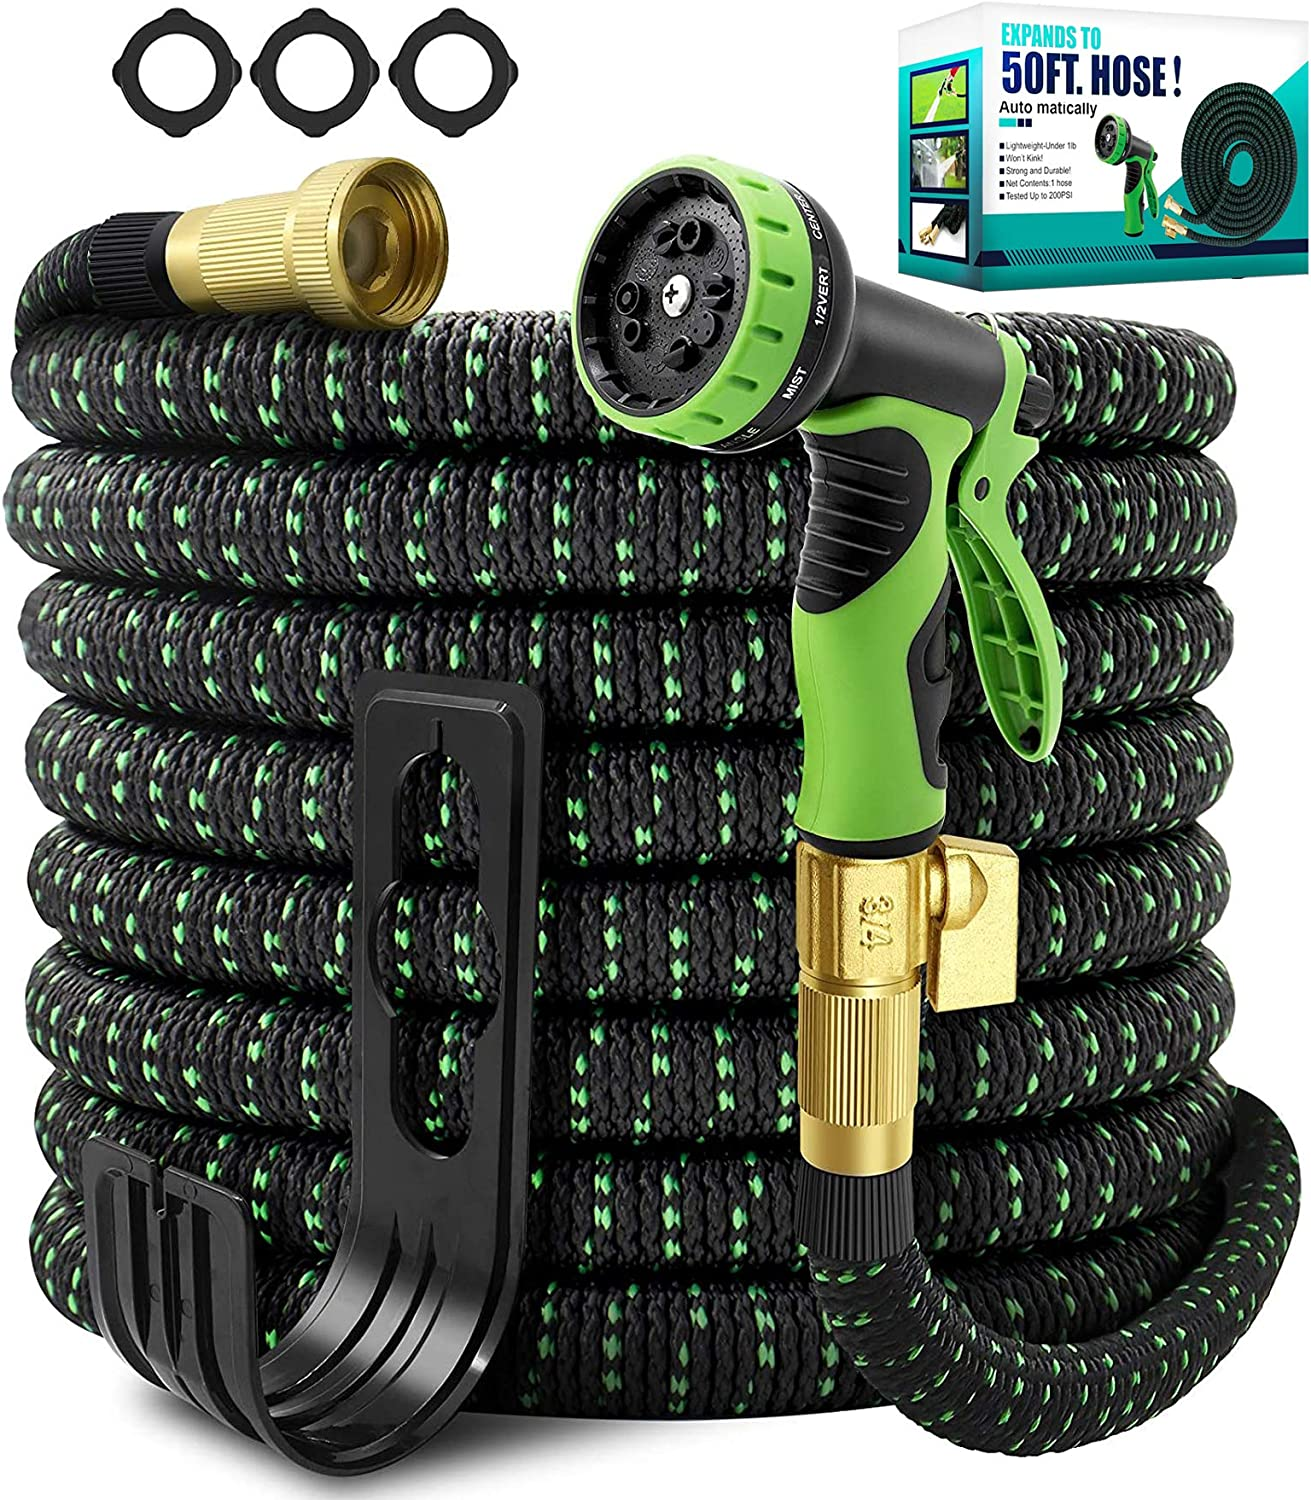 TIKUTKU Expandable Garden Hose 50ft,with 10 Function High Pressure Nozzle,Lightweight & Flexible Water Hose,Durable 2-Layers Latex Core and 3/4